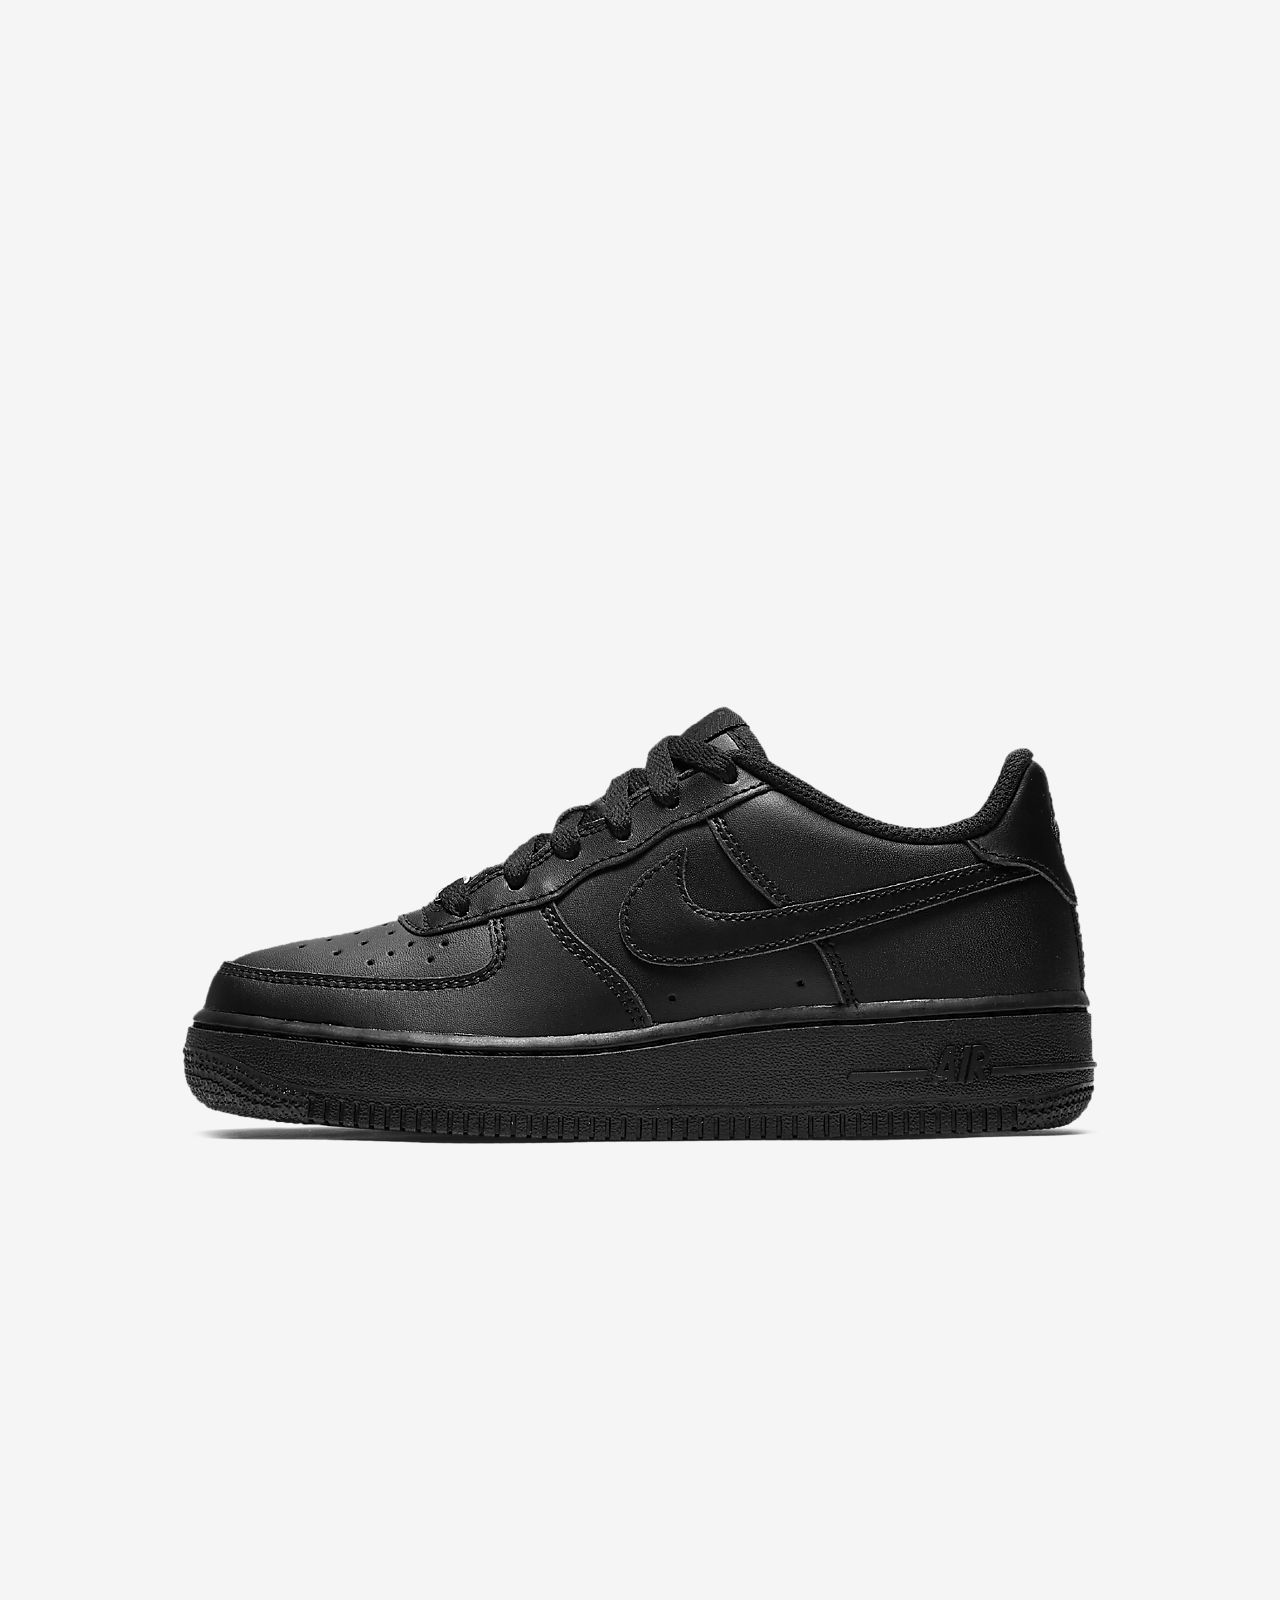 san francisco 5c690 0b69e Older Kids  Shoe. Nike Air Force 1